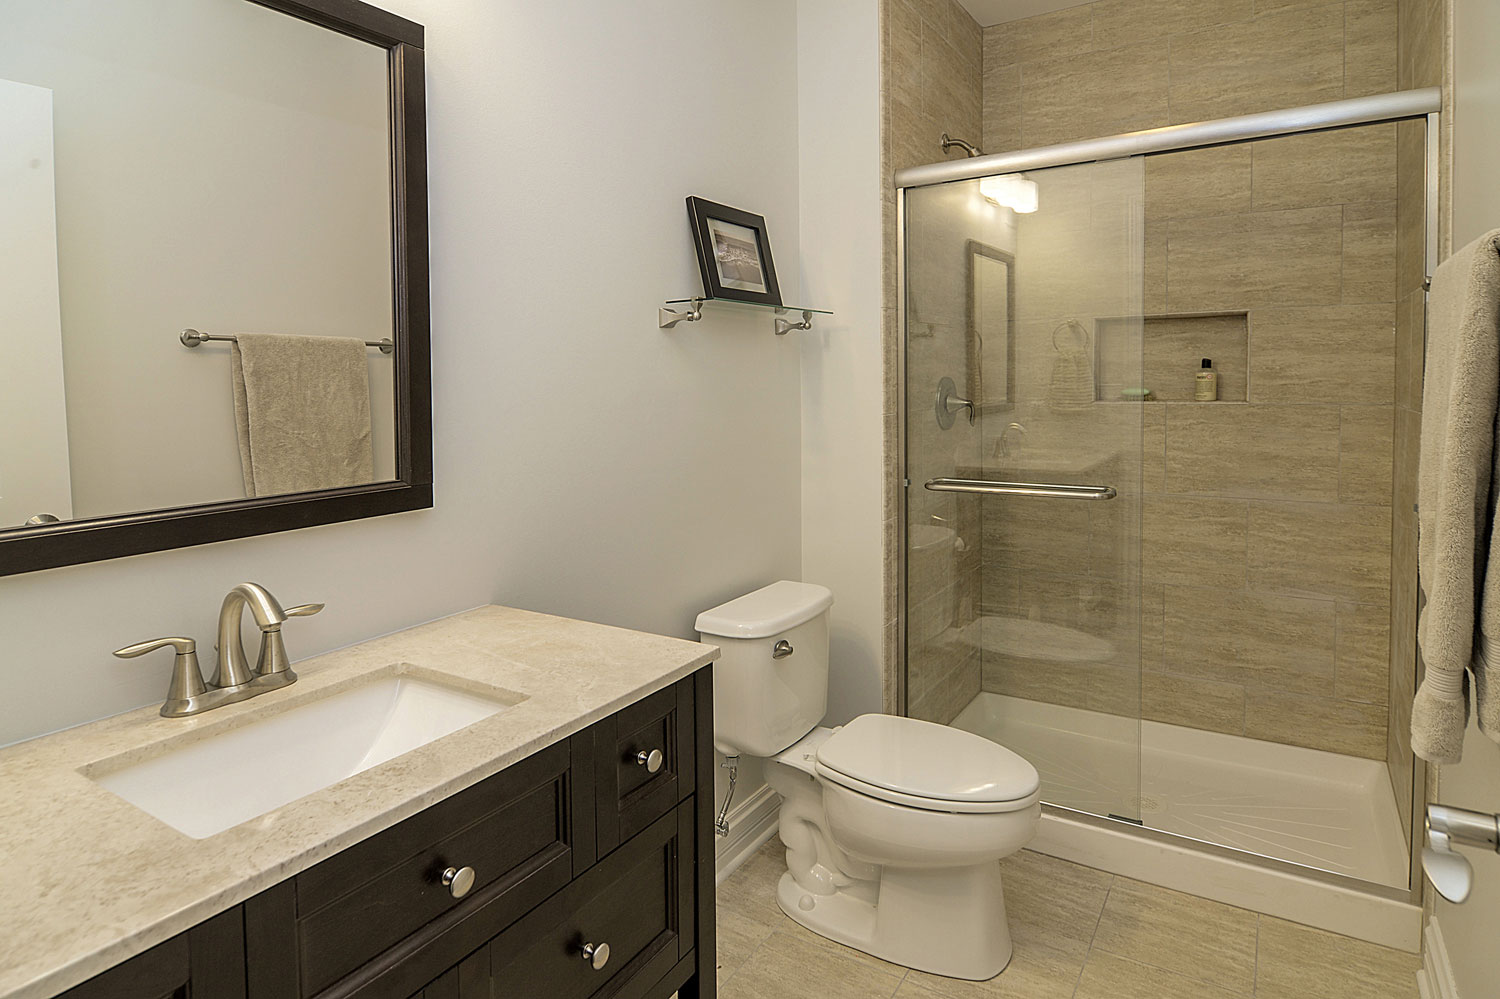 Steve emily 39 s hall bathroom remodel pictures home for Bath remodel ideas